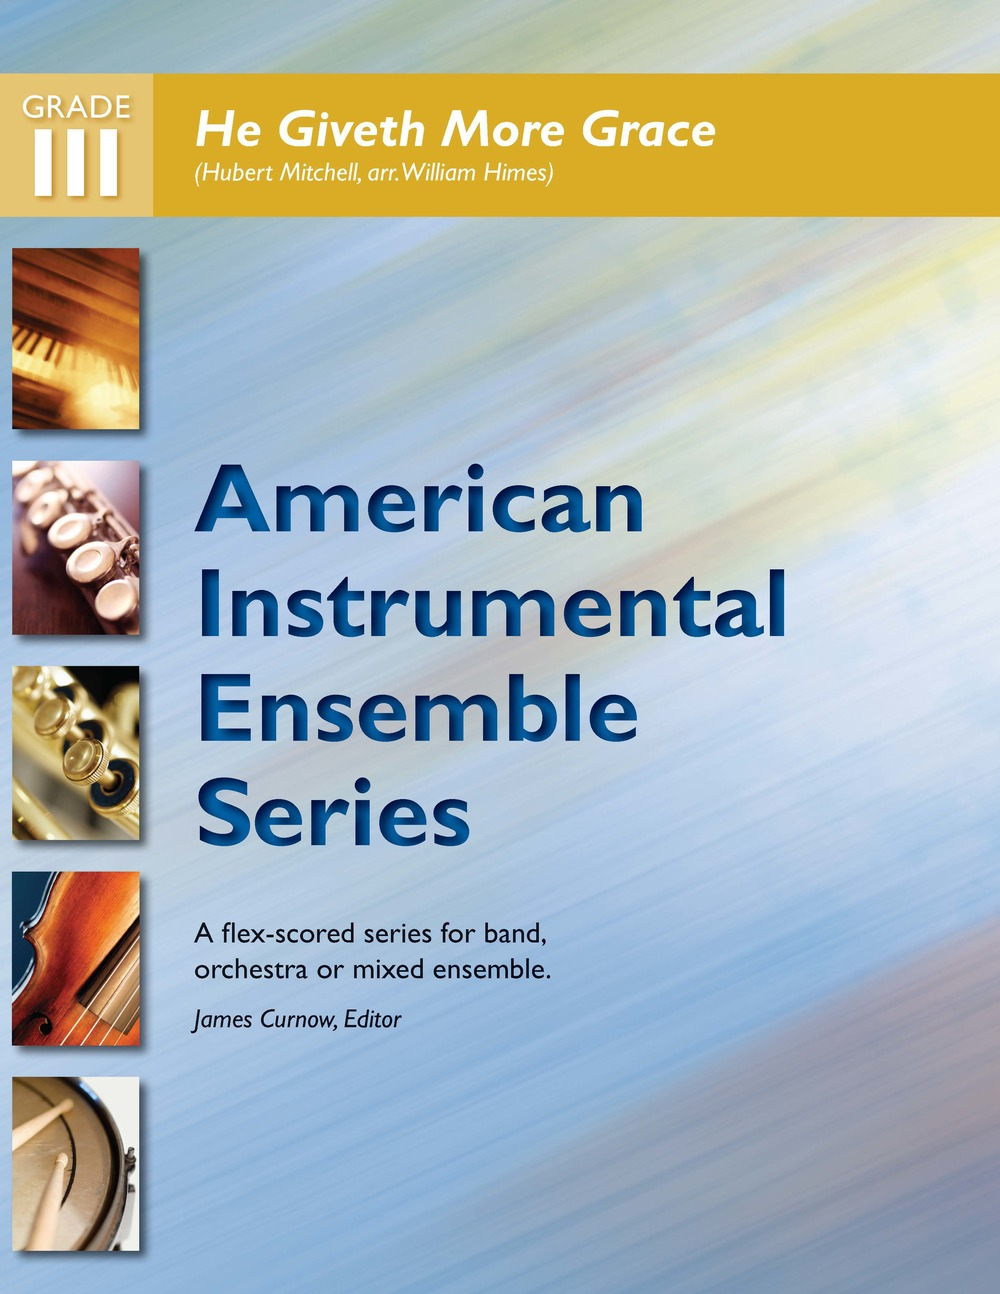 American Instrumental Ensemble Series